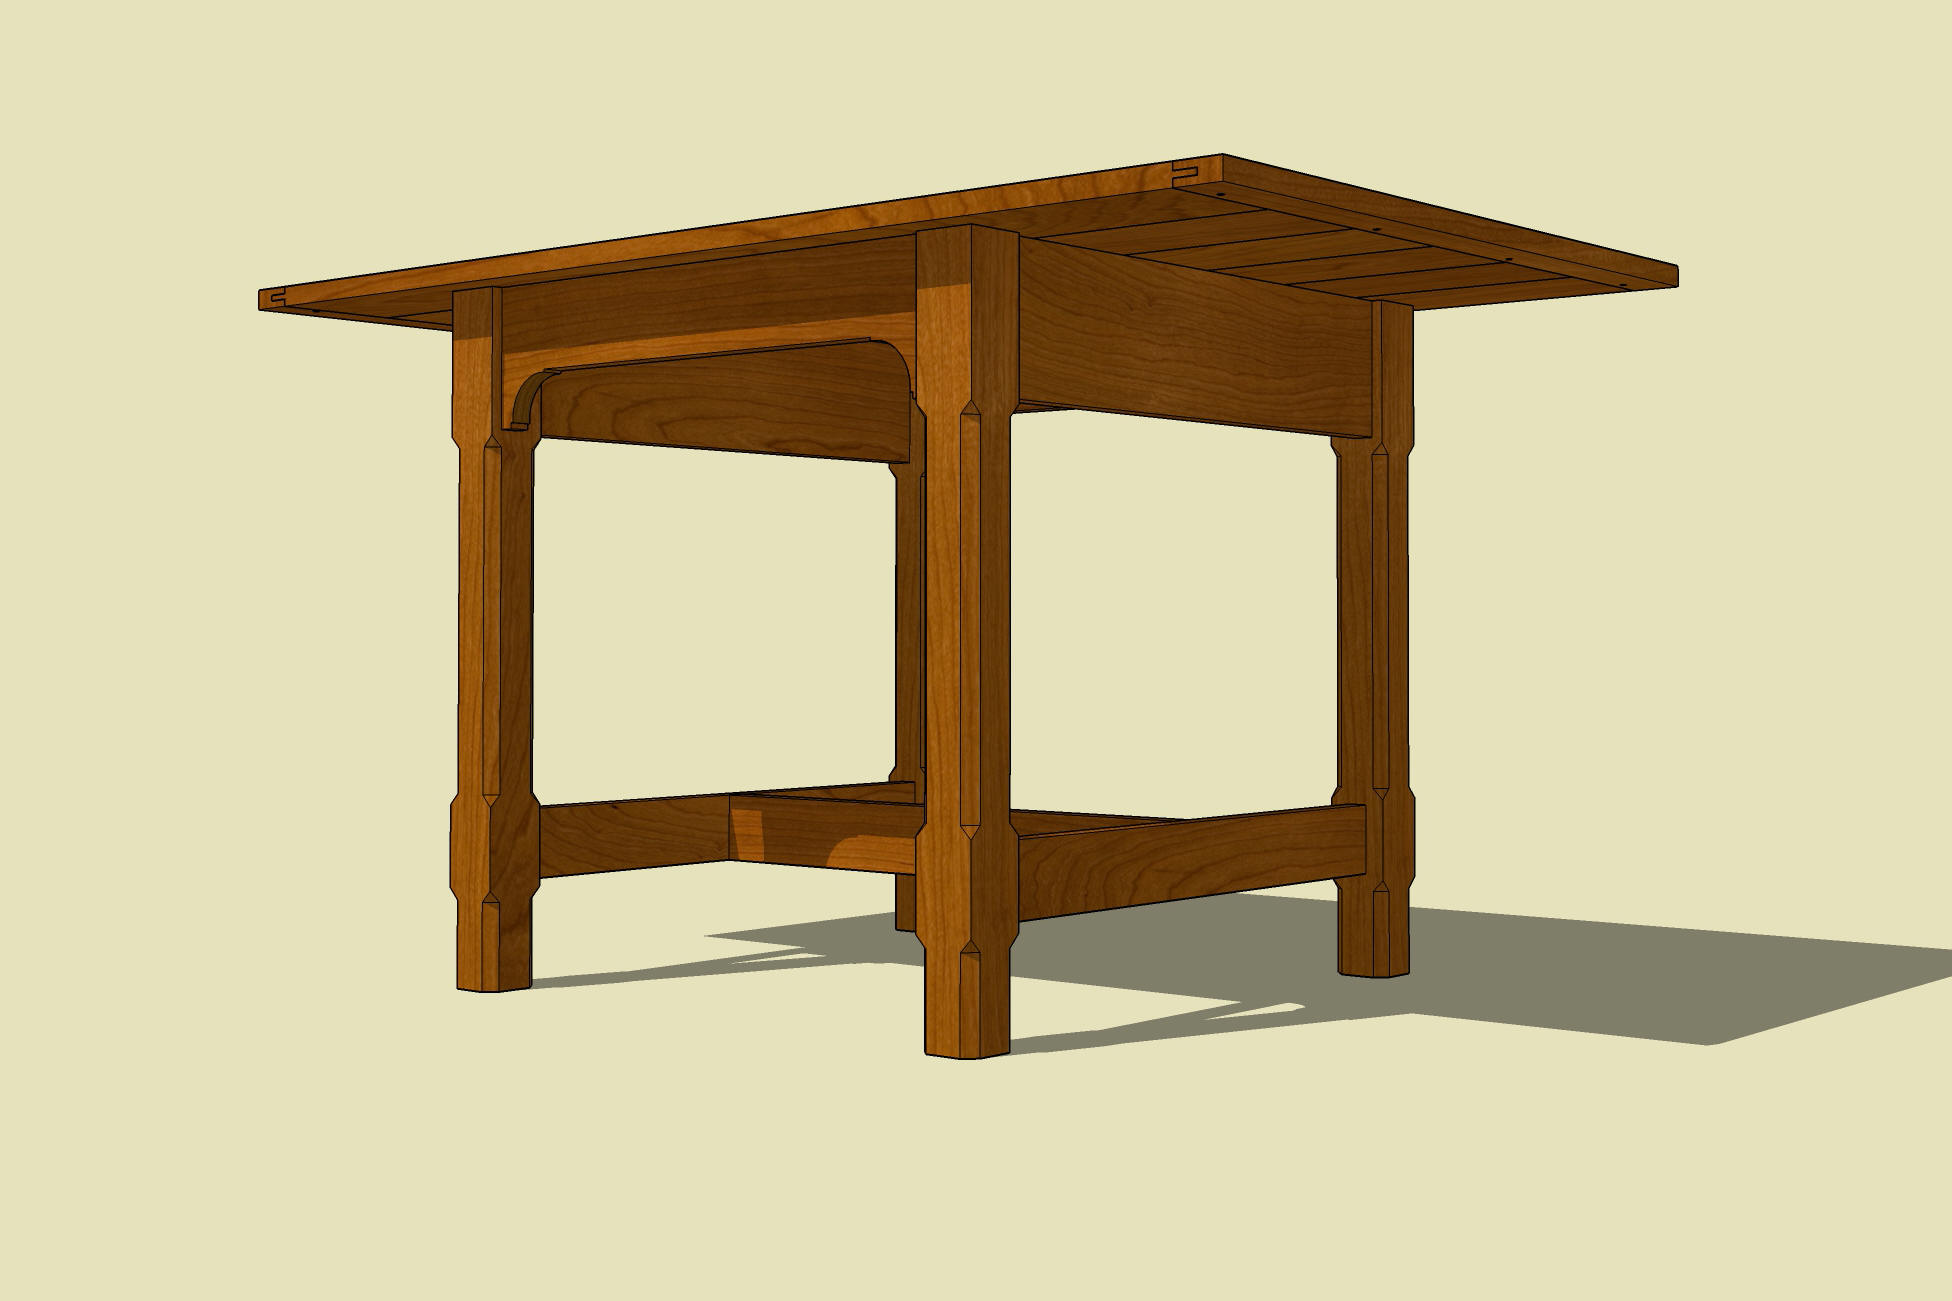 Woodworking plans in sketchup pdf download gemini wood for Table design sketchup